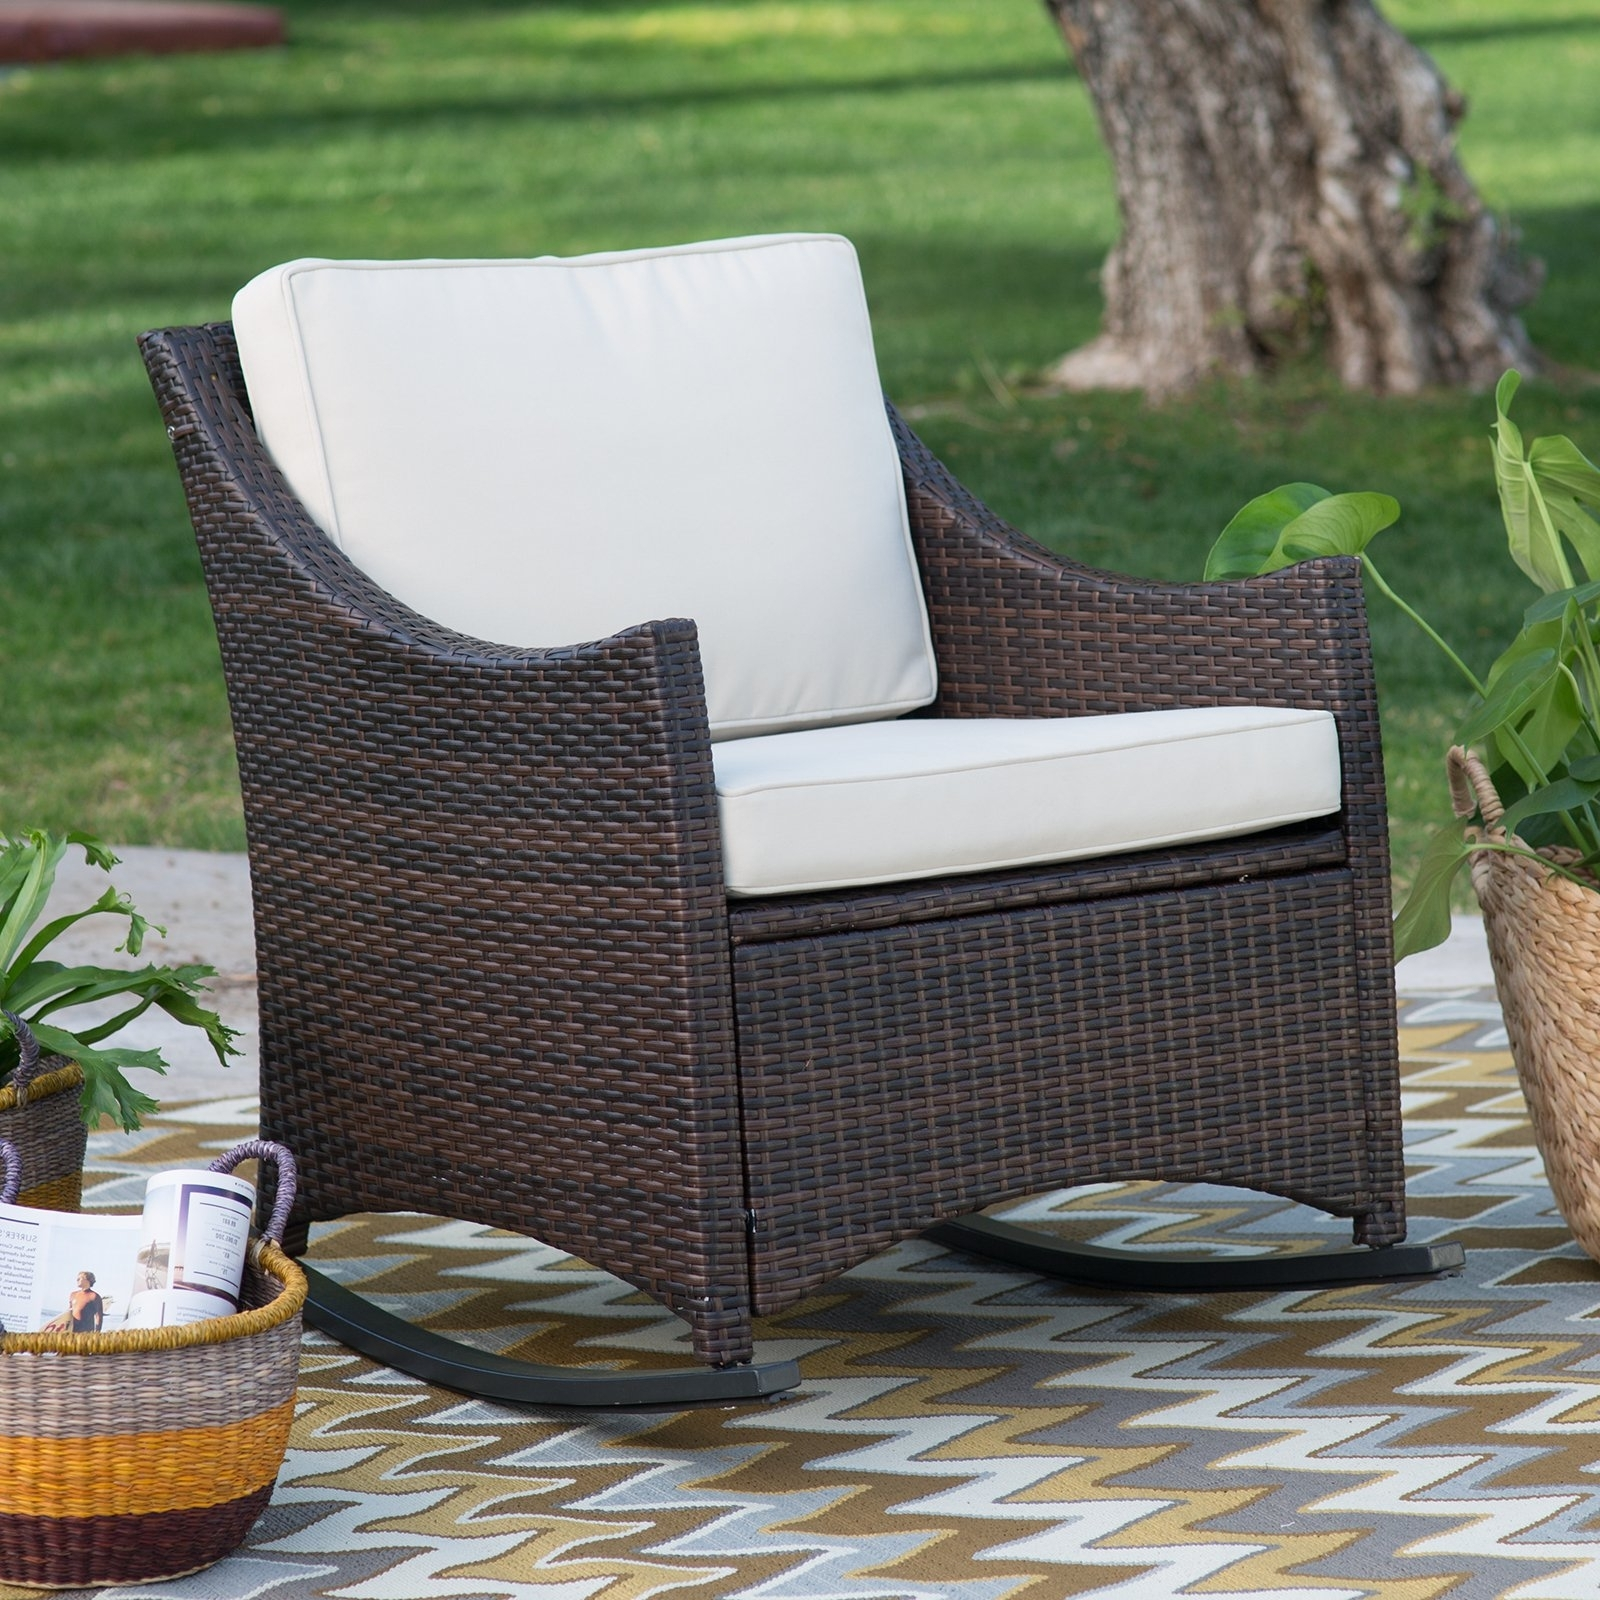 Outdoor Rocking Chairs For Sale Traditional Rocking Chair Inside White Wicker Rocking Chairs (View 8 of 15)